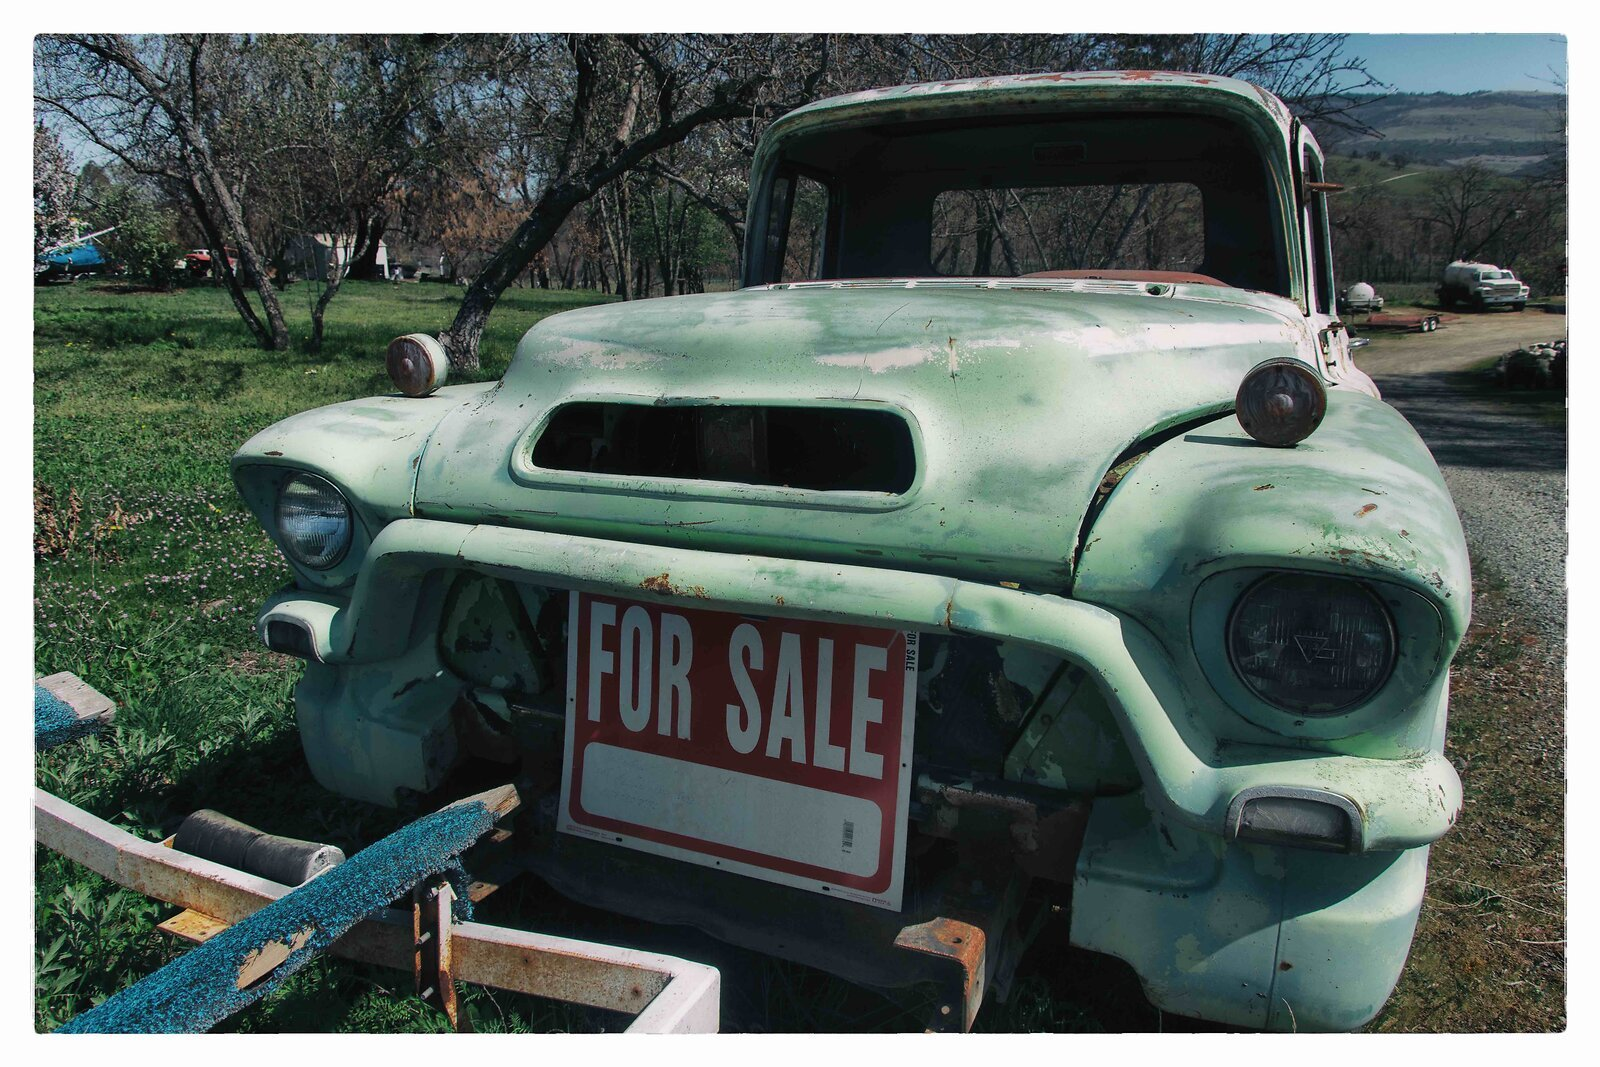 G1x_Ford_pickup_For_Sale.jpg